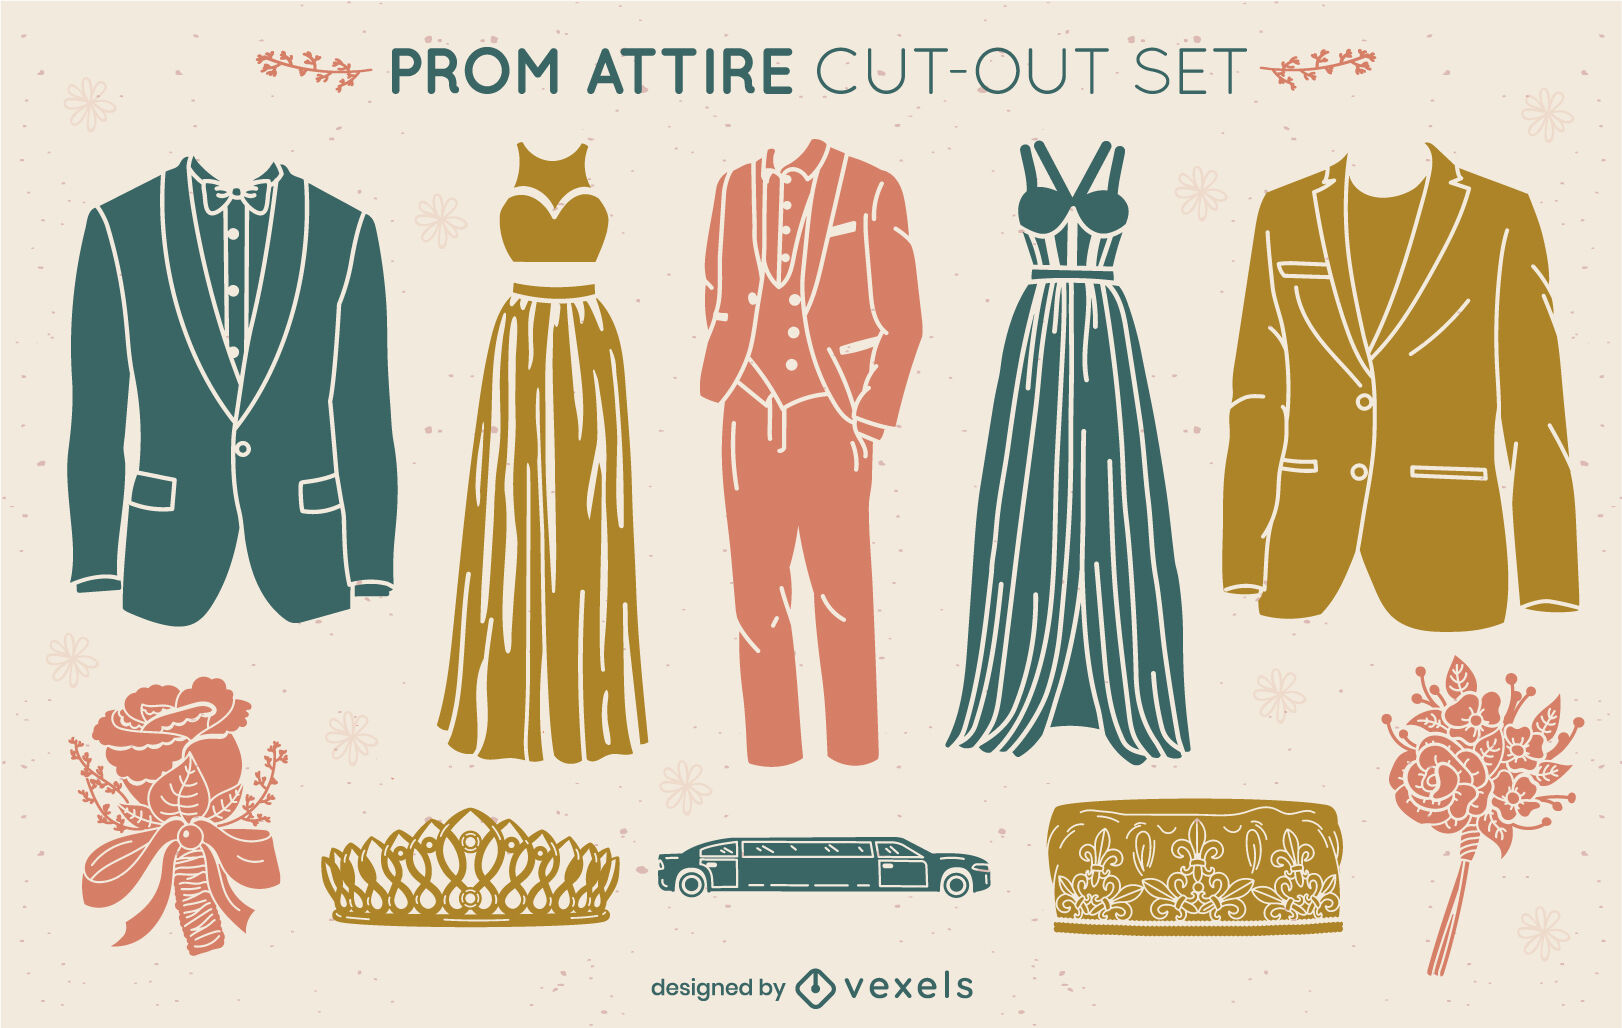 Prom formal party clothing cut out set